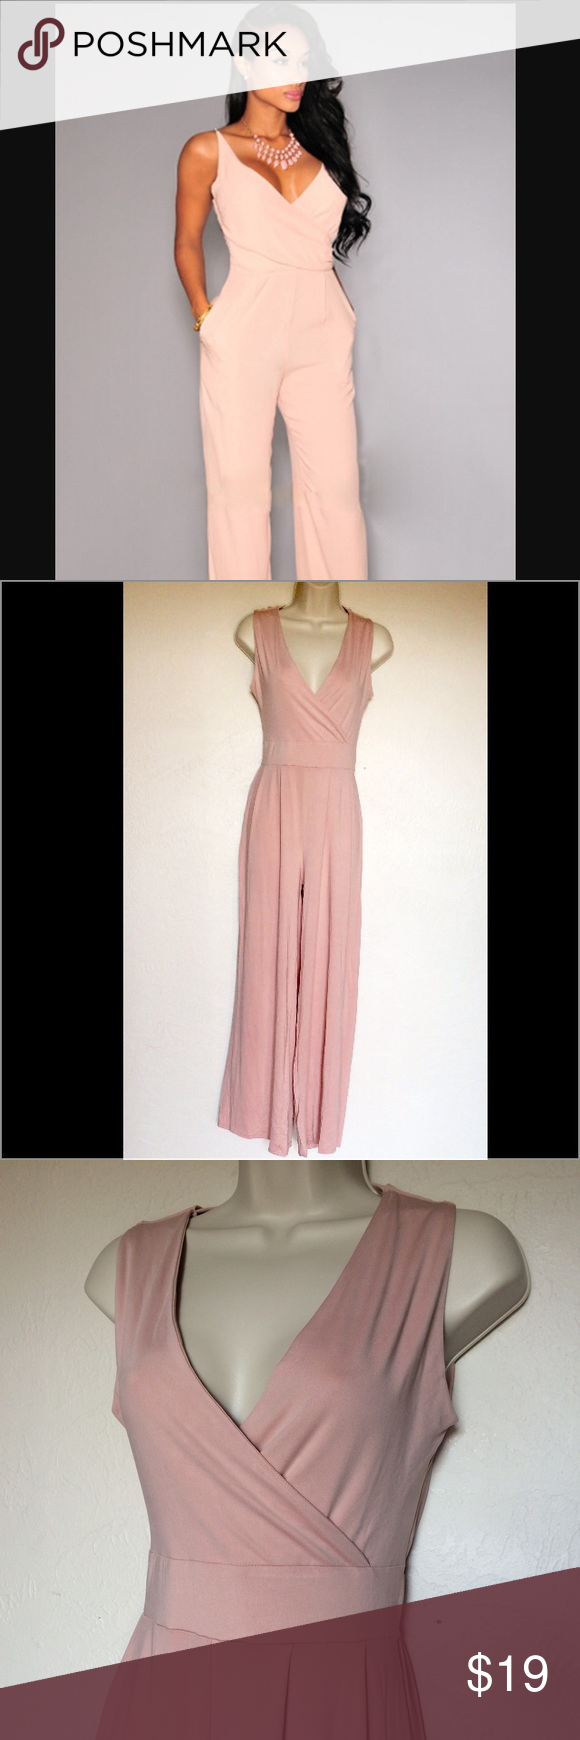 Blush pink jumpsuit The back has a black mesh lace panel with tiny hearts and draped pink fabric. NWT never worn! Cover picture for reference. NOT FOREVER 21 Forever 21 Pants Jumpsuits & Rompers